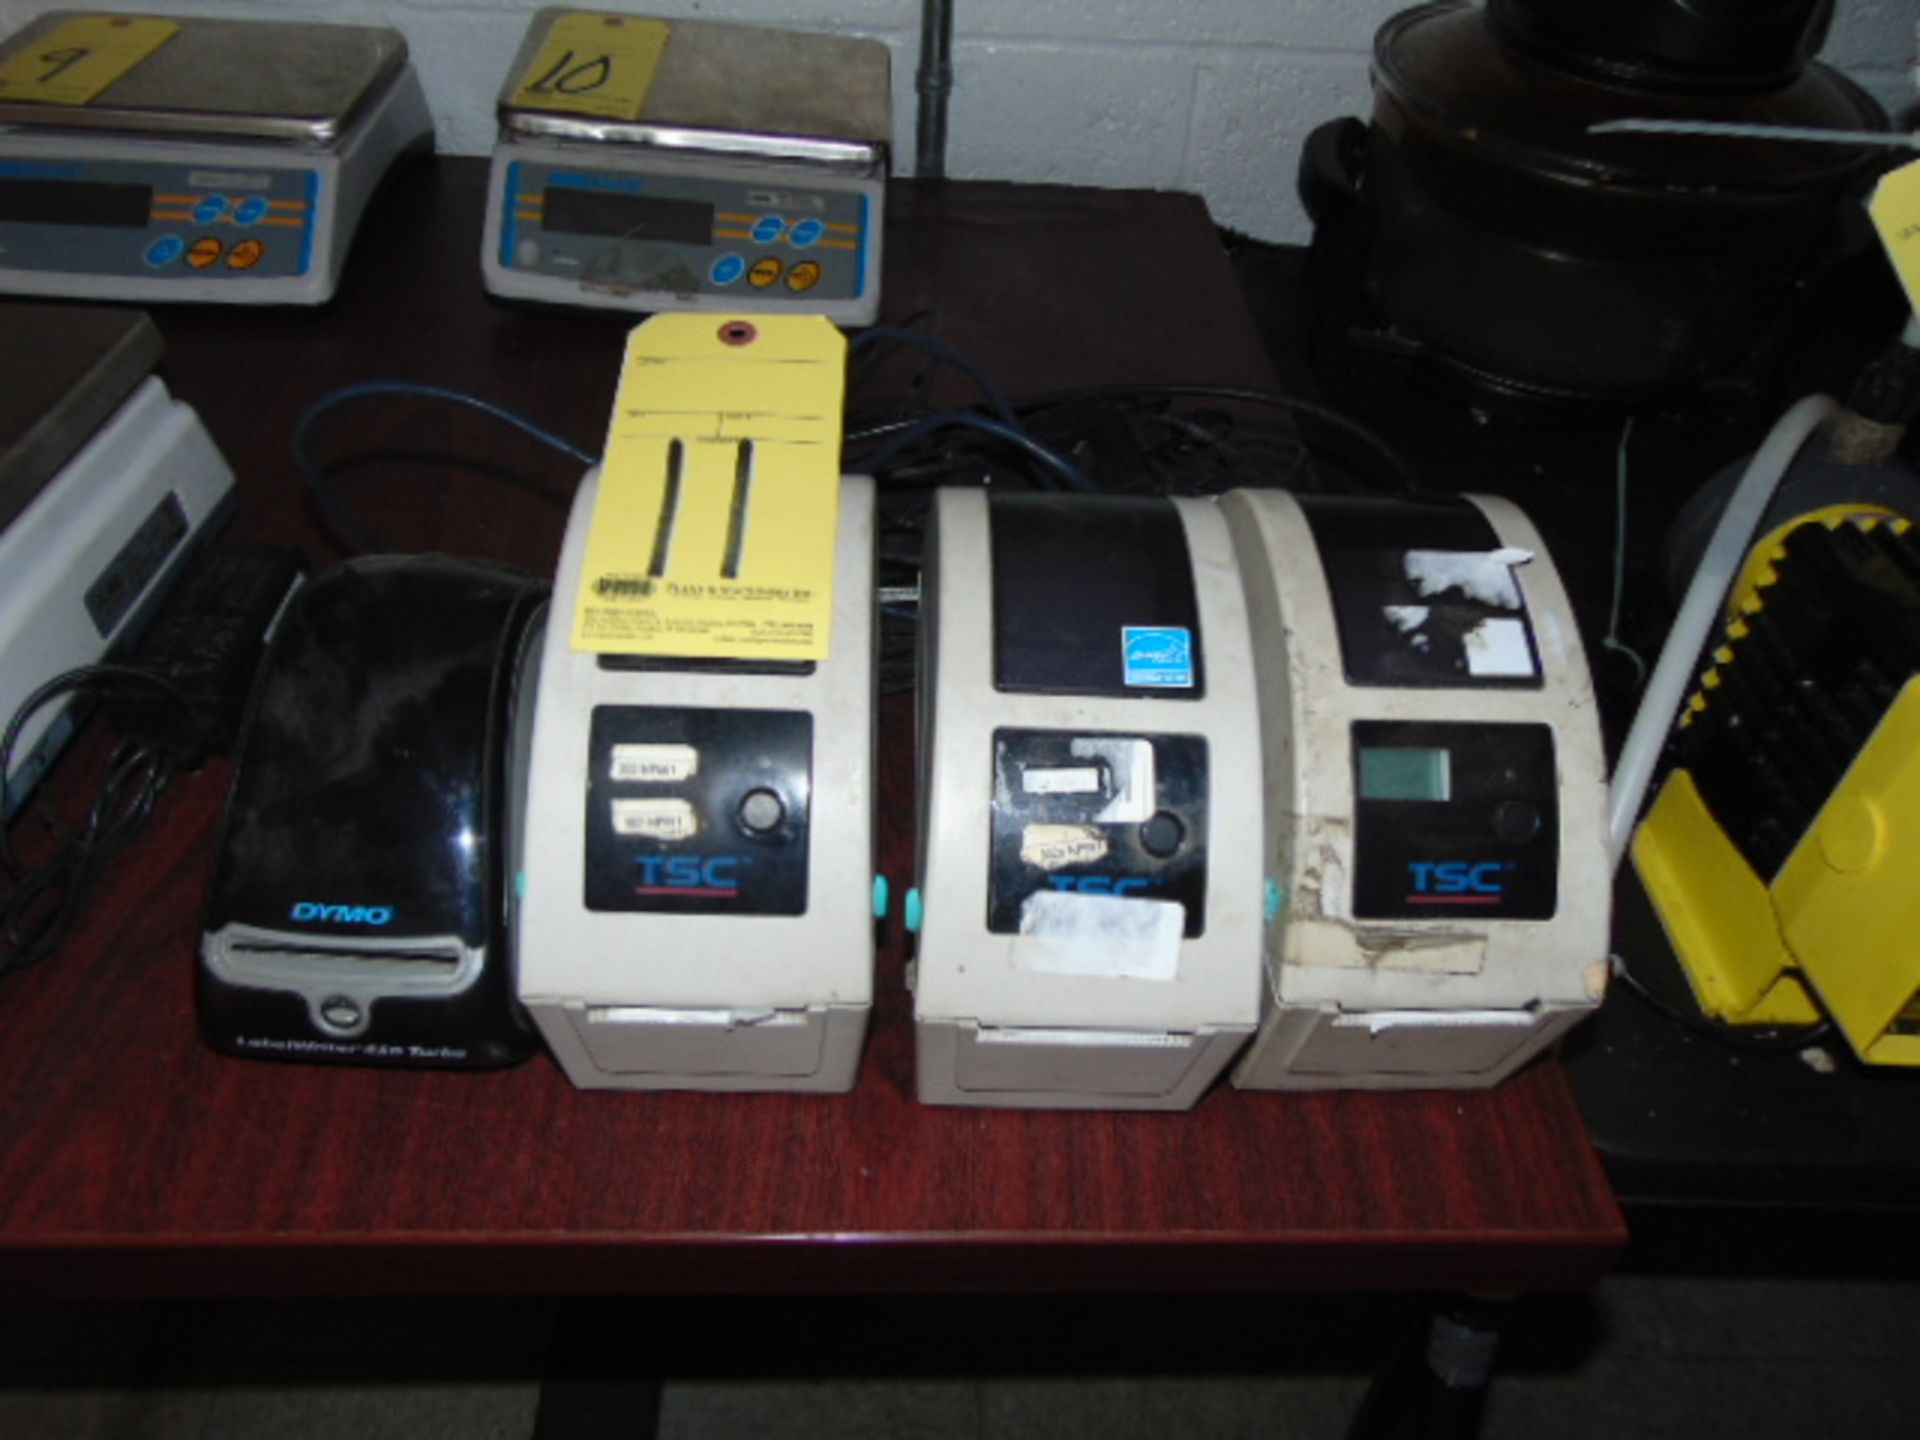 LOT OF LABEL PRINTERS (4), assorted